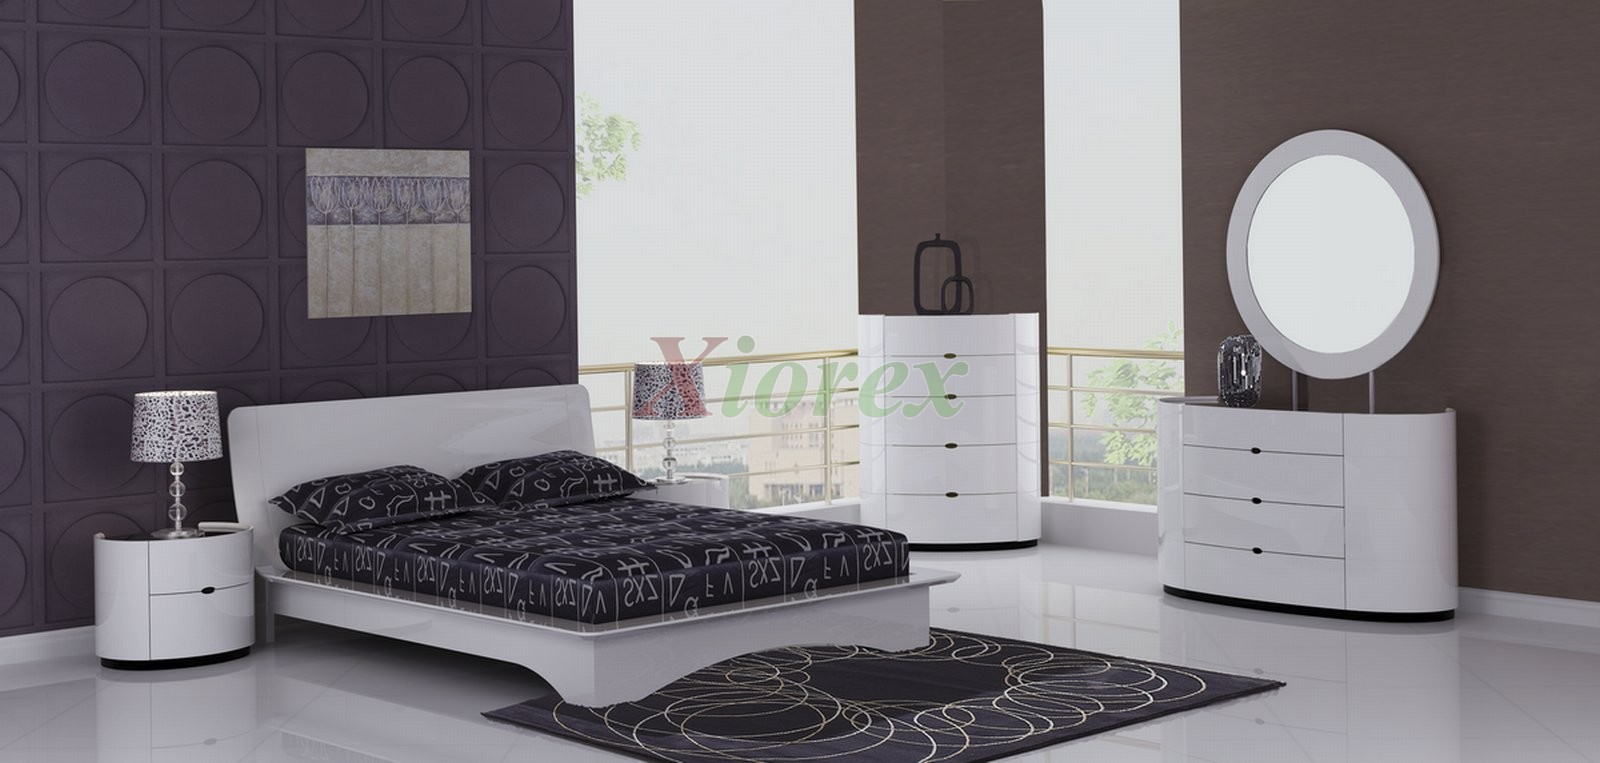 Eri all white modern bedroom furniture sets canada xiorex for Headboard and dresser set